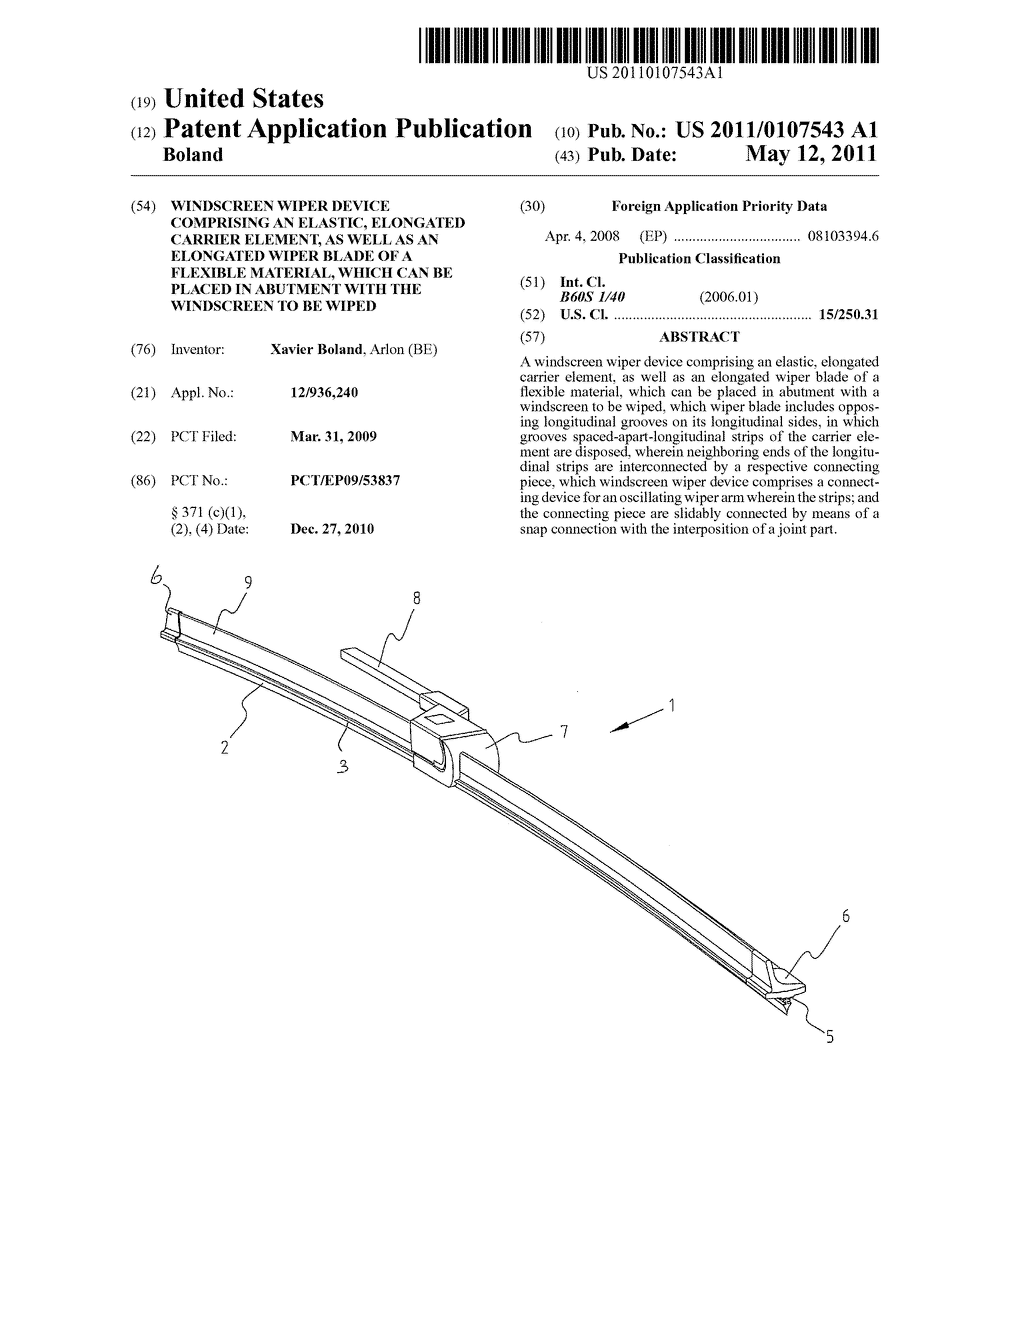 WINDSCREEN WIPER DEVICE COMPRISING AN ELASTIC, ELONGATED CARRIER ELEMENT, AS WELL AS AN ELONGATED WIPER BLADE OF A FLEXIBLE MATERIAL, WHICH CAN BE PLACED IN ABUTMENT WITH THE WINDSCREEN TO BE WIPED - diagram, schematic, and image 01